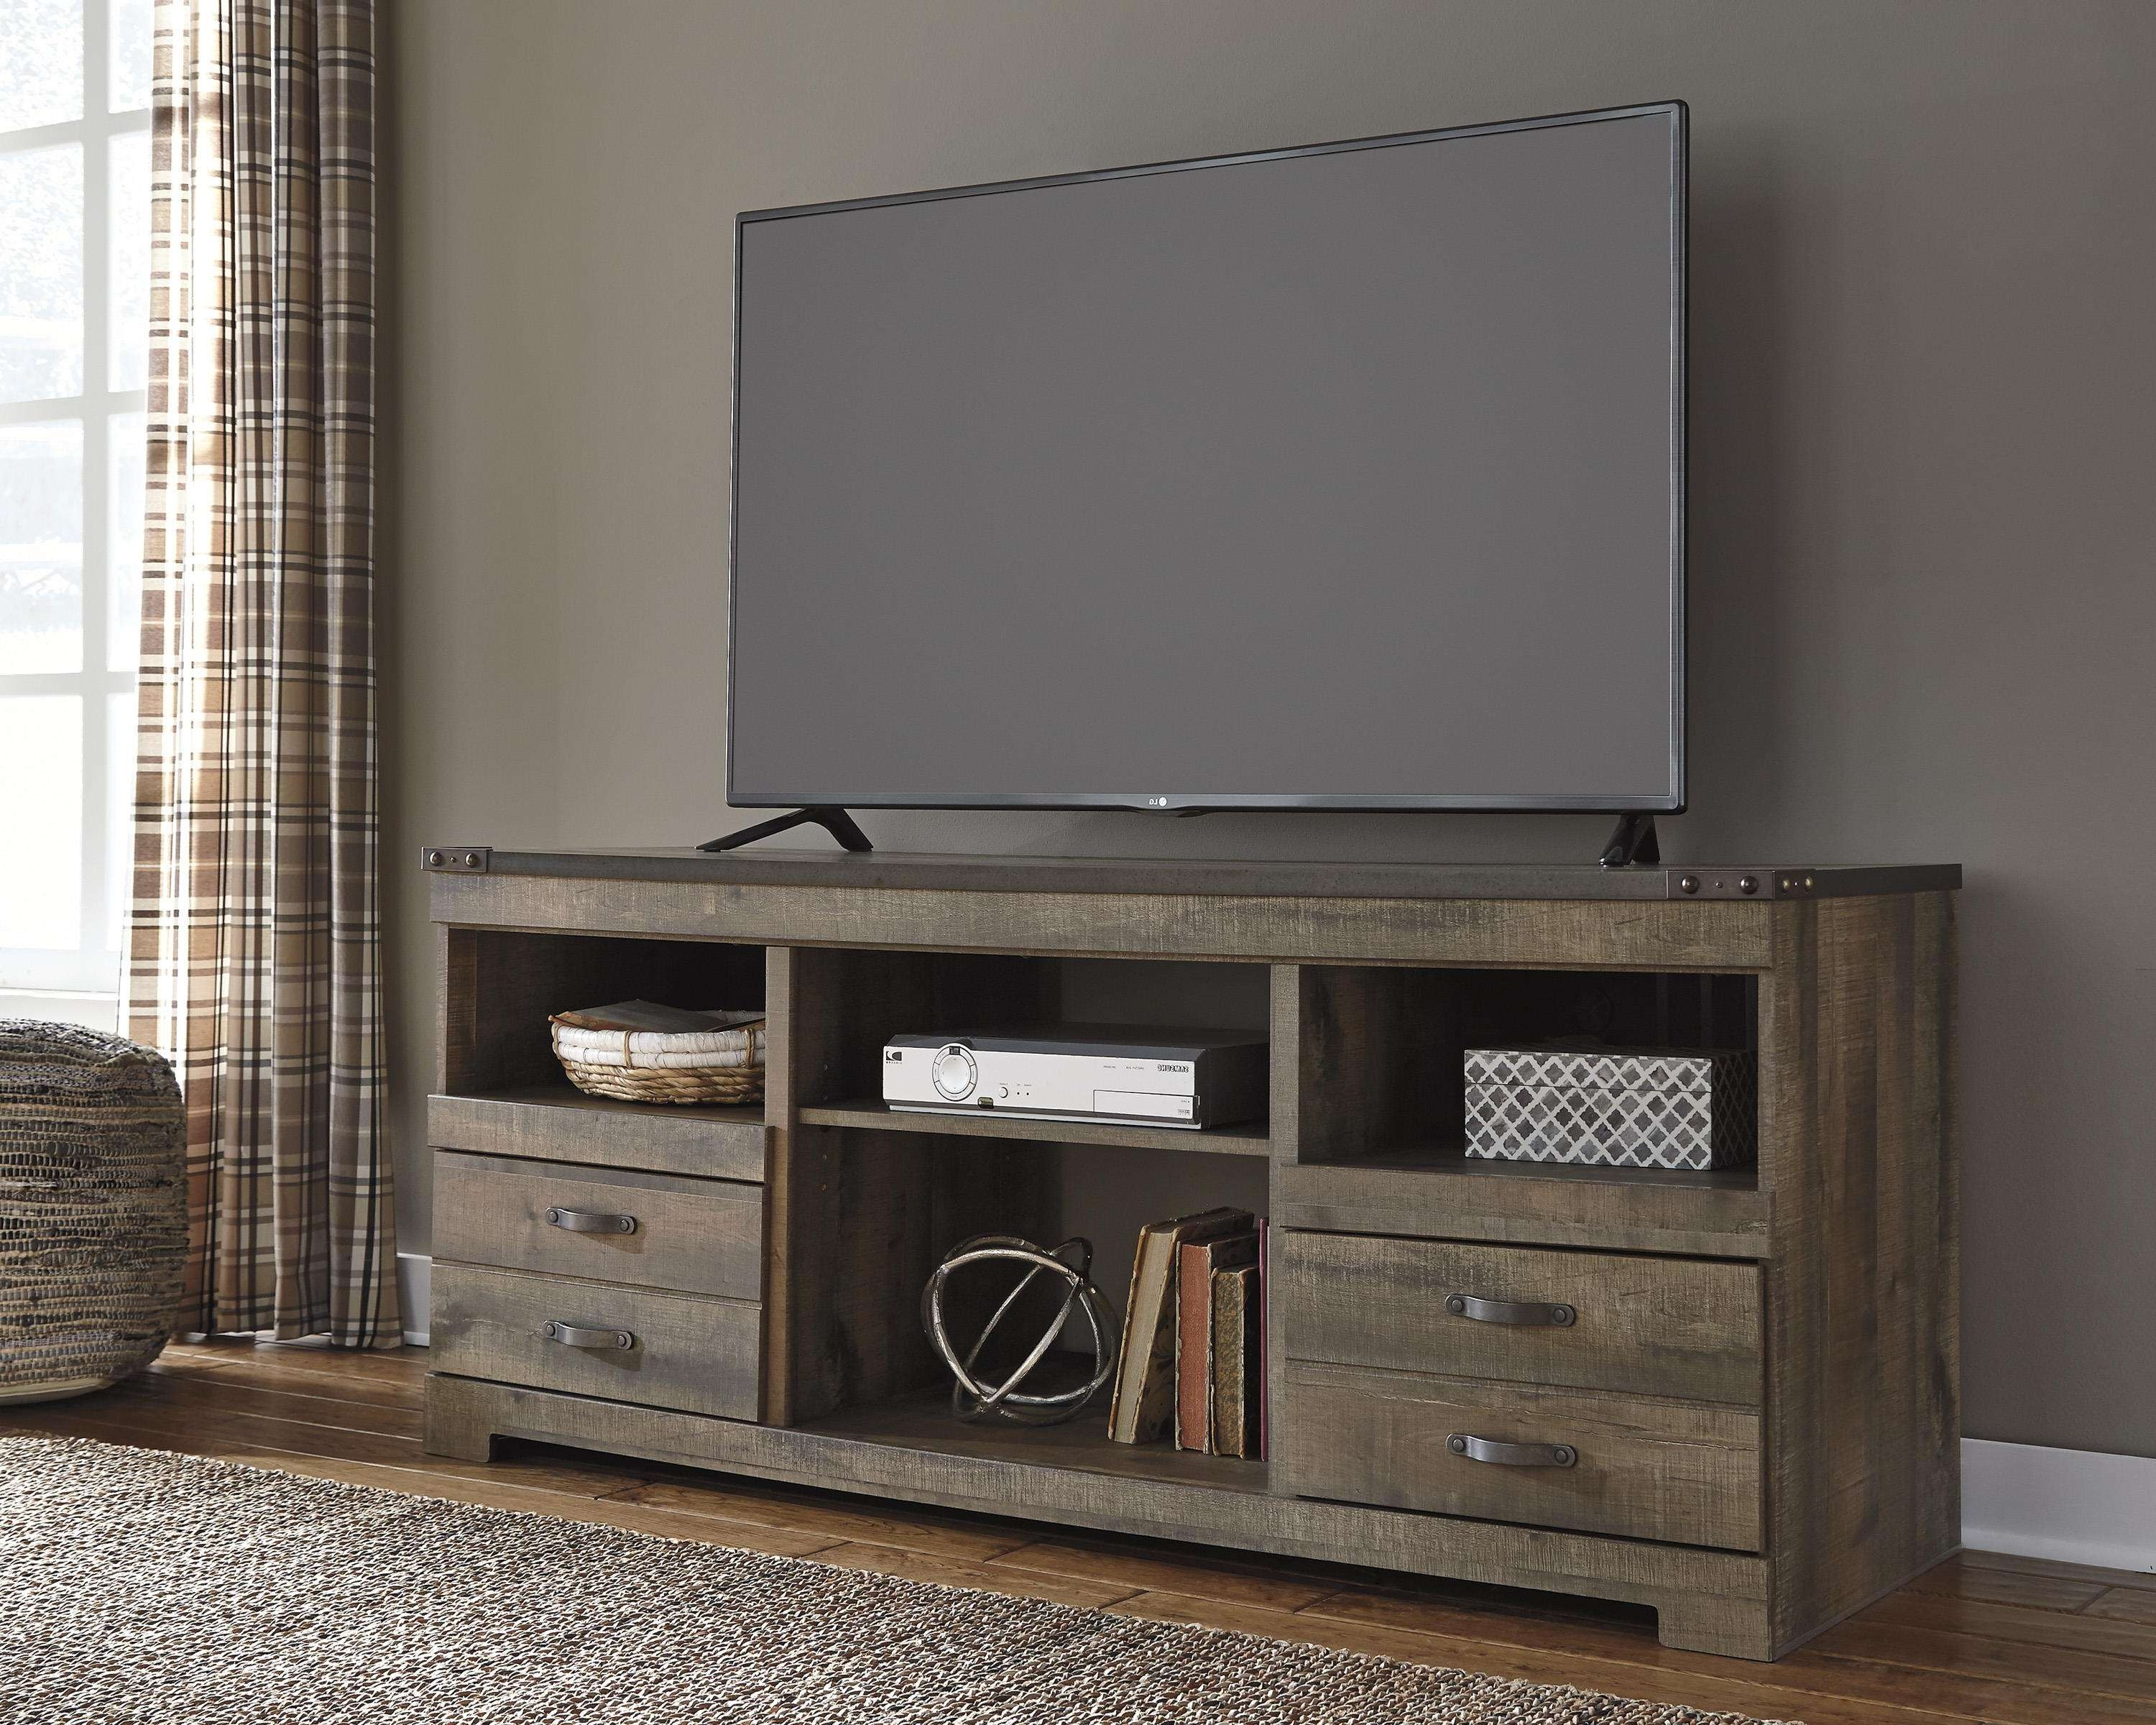 Tv : Tv Stand Images Amazing Stands And Deliver Tv Stands Buy Avf With Regard To Stand And Deliver Tv Stands (View 5 of 20)